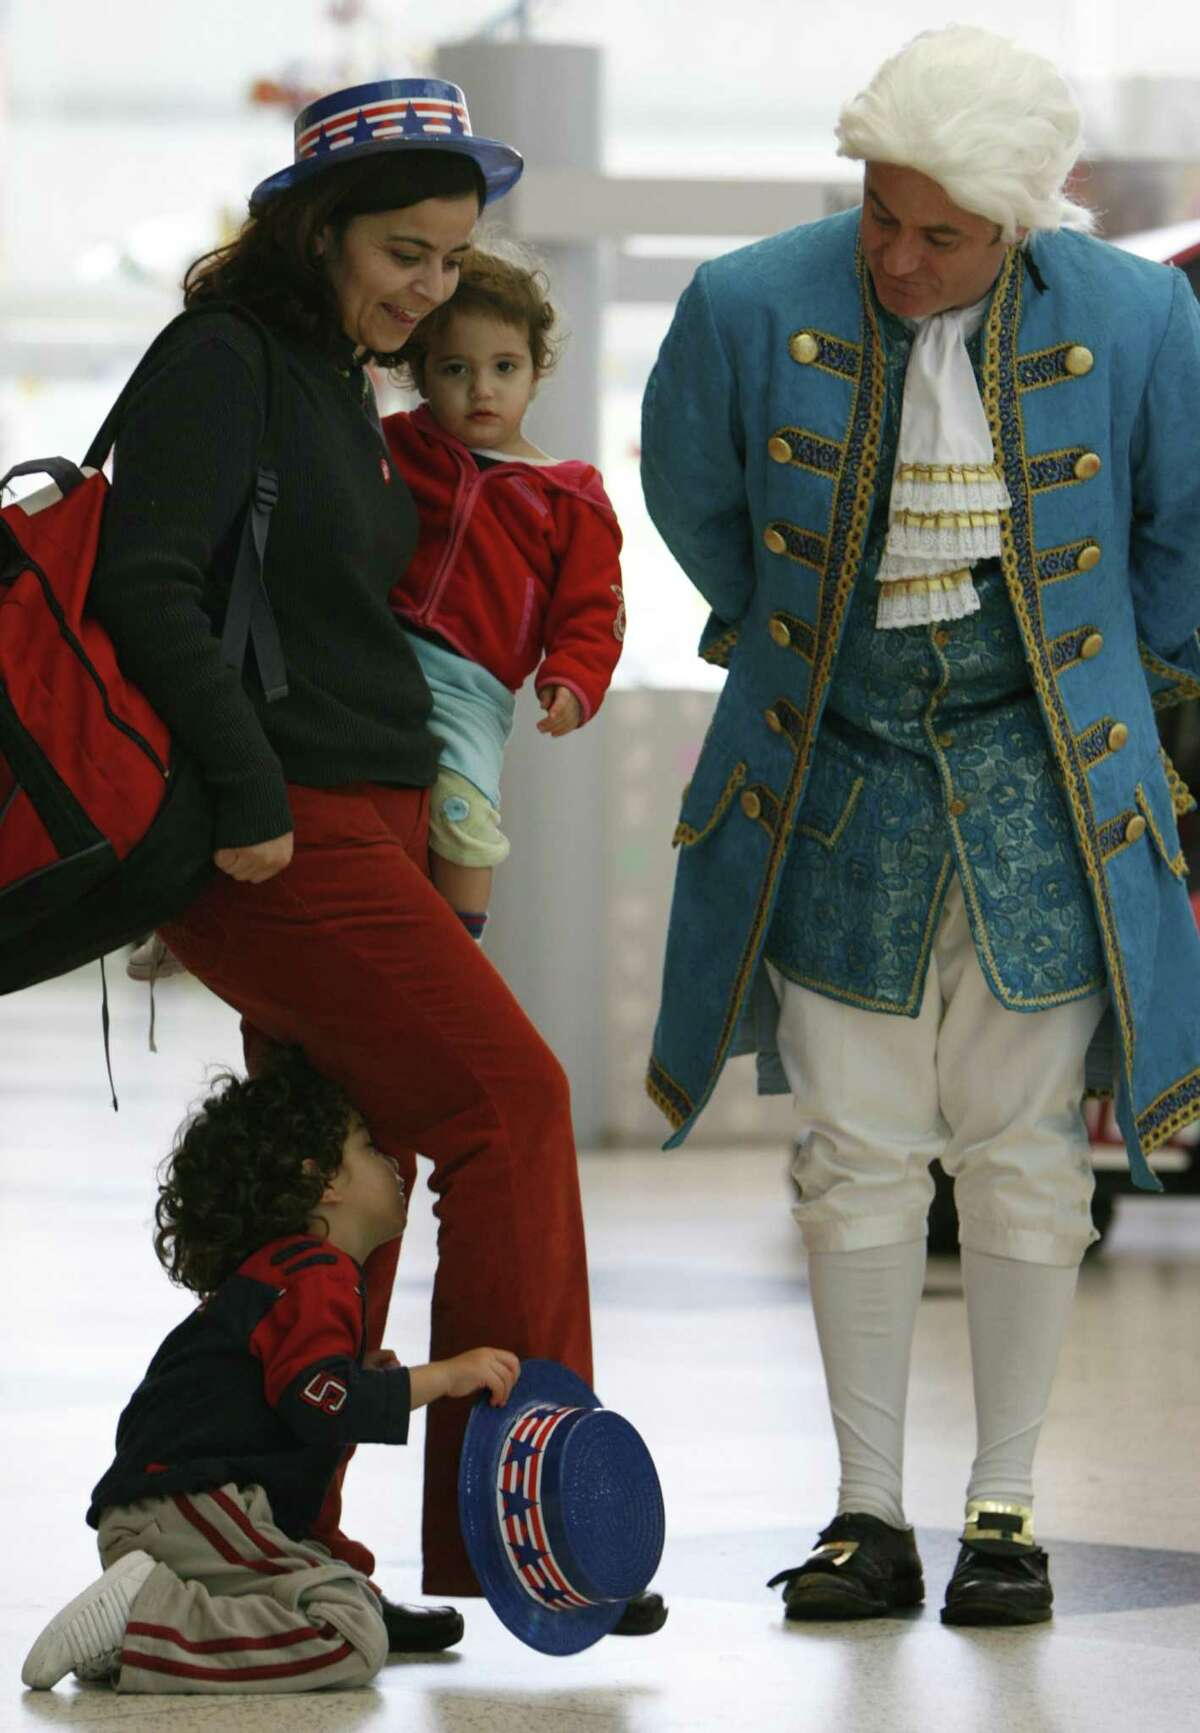 Efrat Hazan Ozeri, left, holds her daughter, Naama Ozeri, 2, as her son, Liam Ozeri, 3, hides from George Washington played by David Born during President's Day activities at The Children's Museum of Houston, Monday, Feb. 20, 2006. (AP Photo/Houston Chronicle, Melissa Phillip) ** MANDATORY CREDIT: NO SALES, MAGS OUT, TV OUT, INTERNET: **